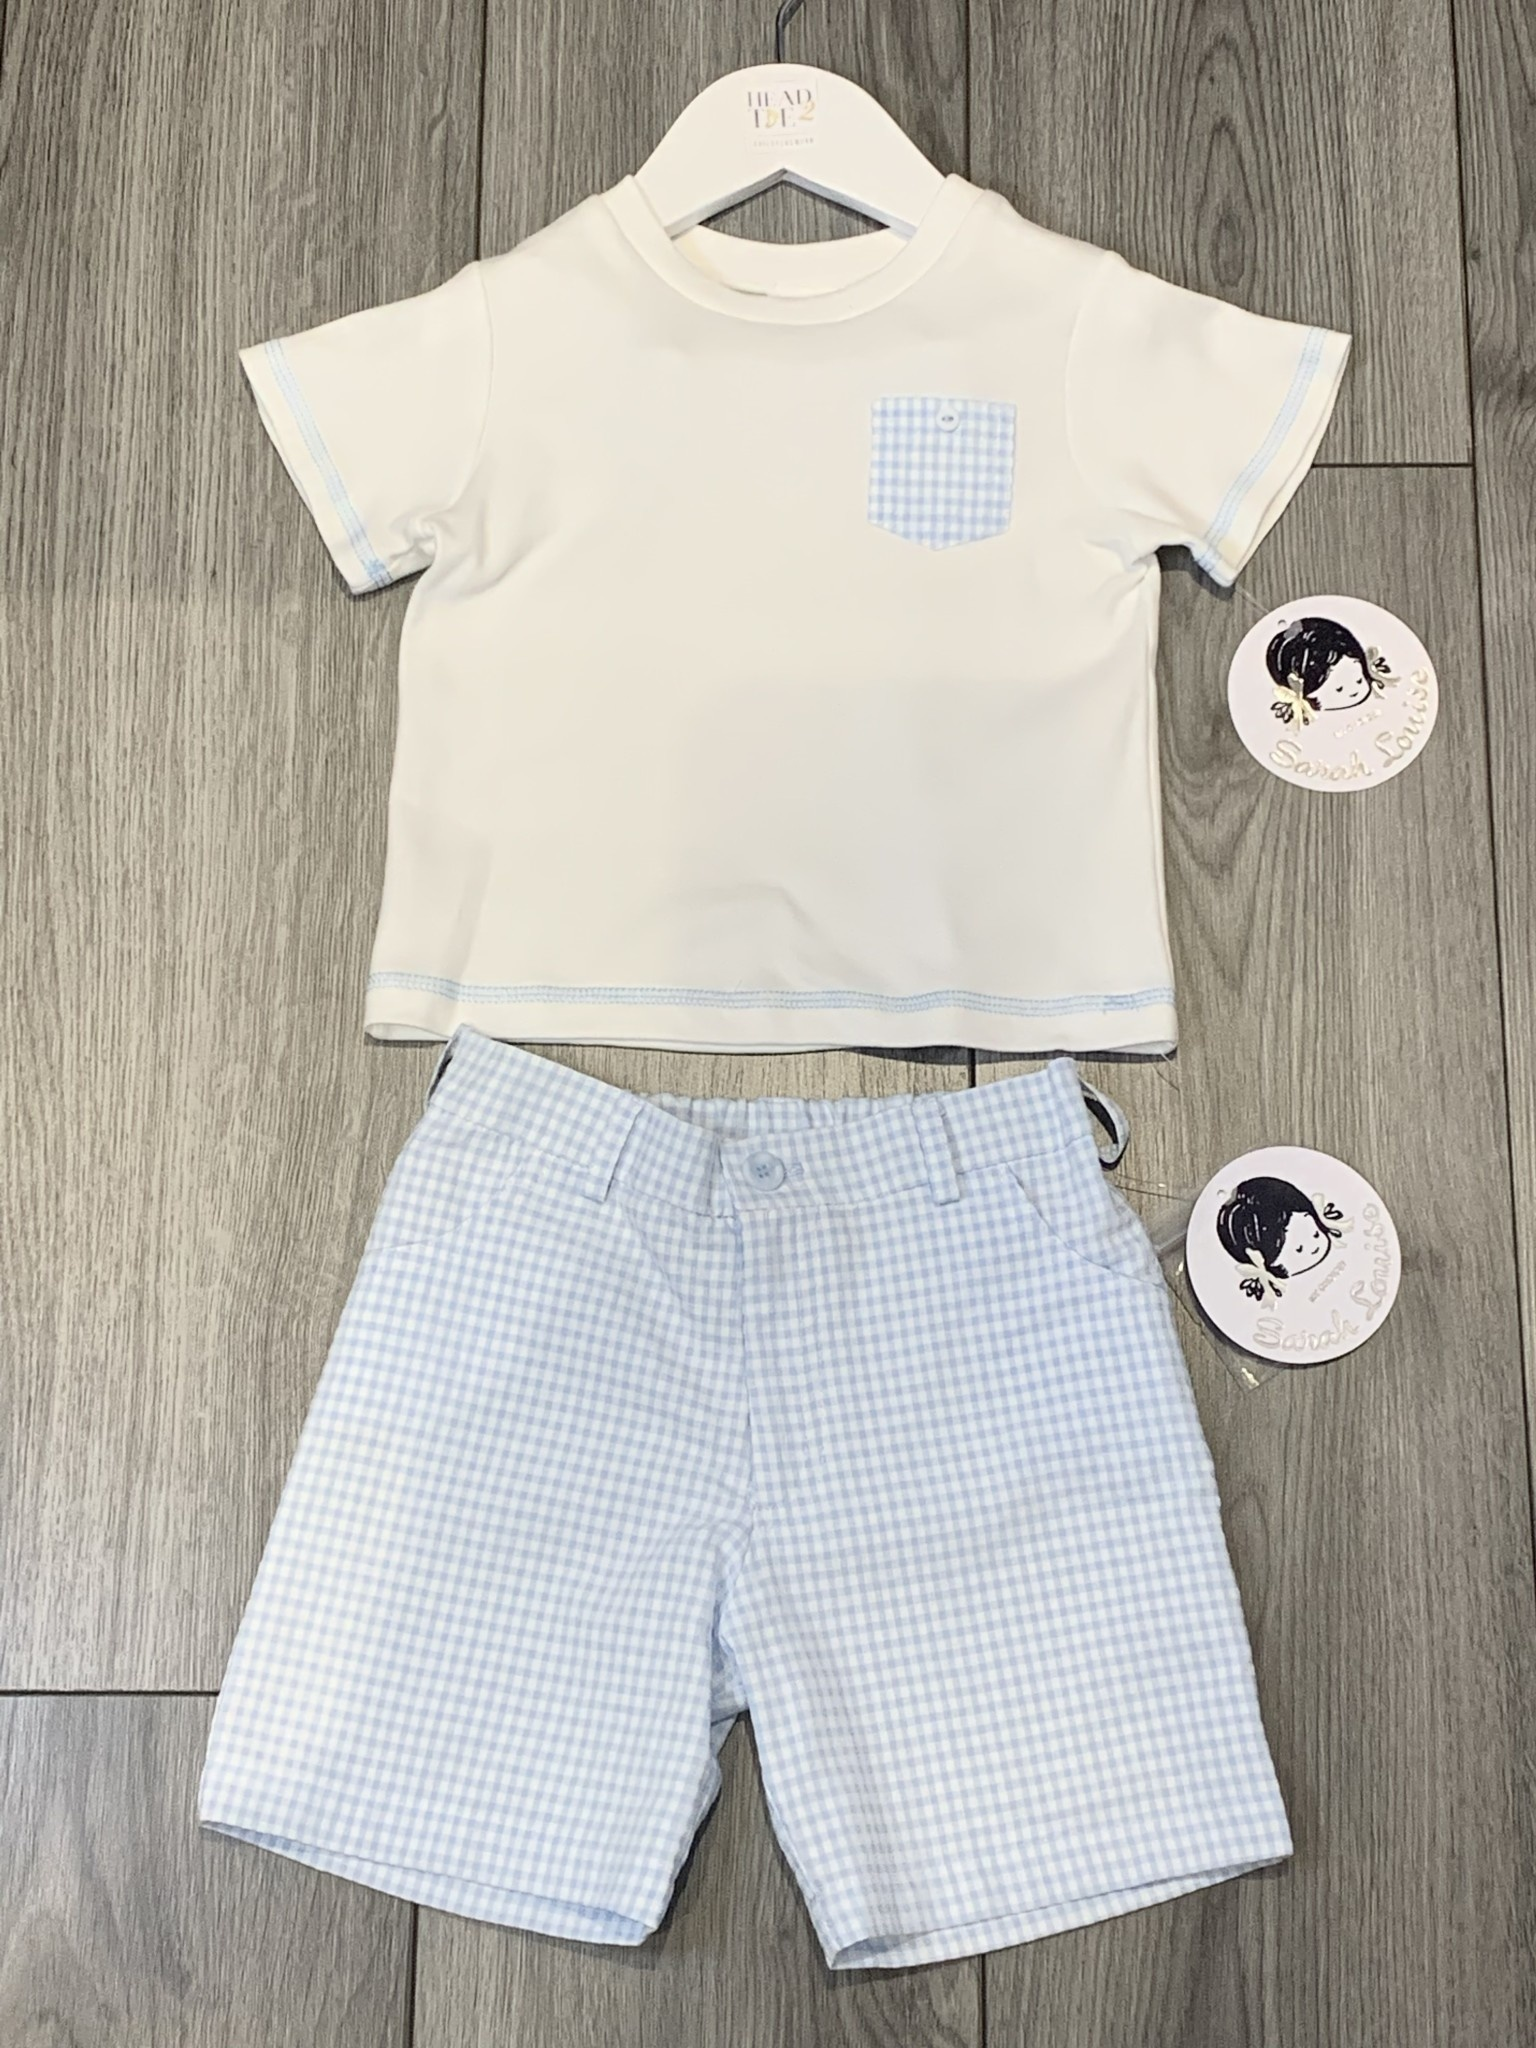 Sarah Louise Sarah Louise SS20 Boys Blue Gingham short set 011993